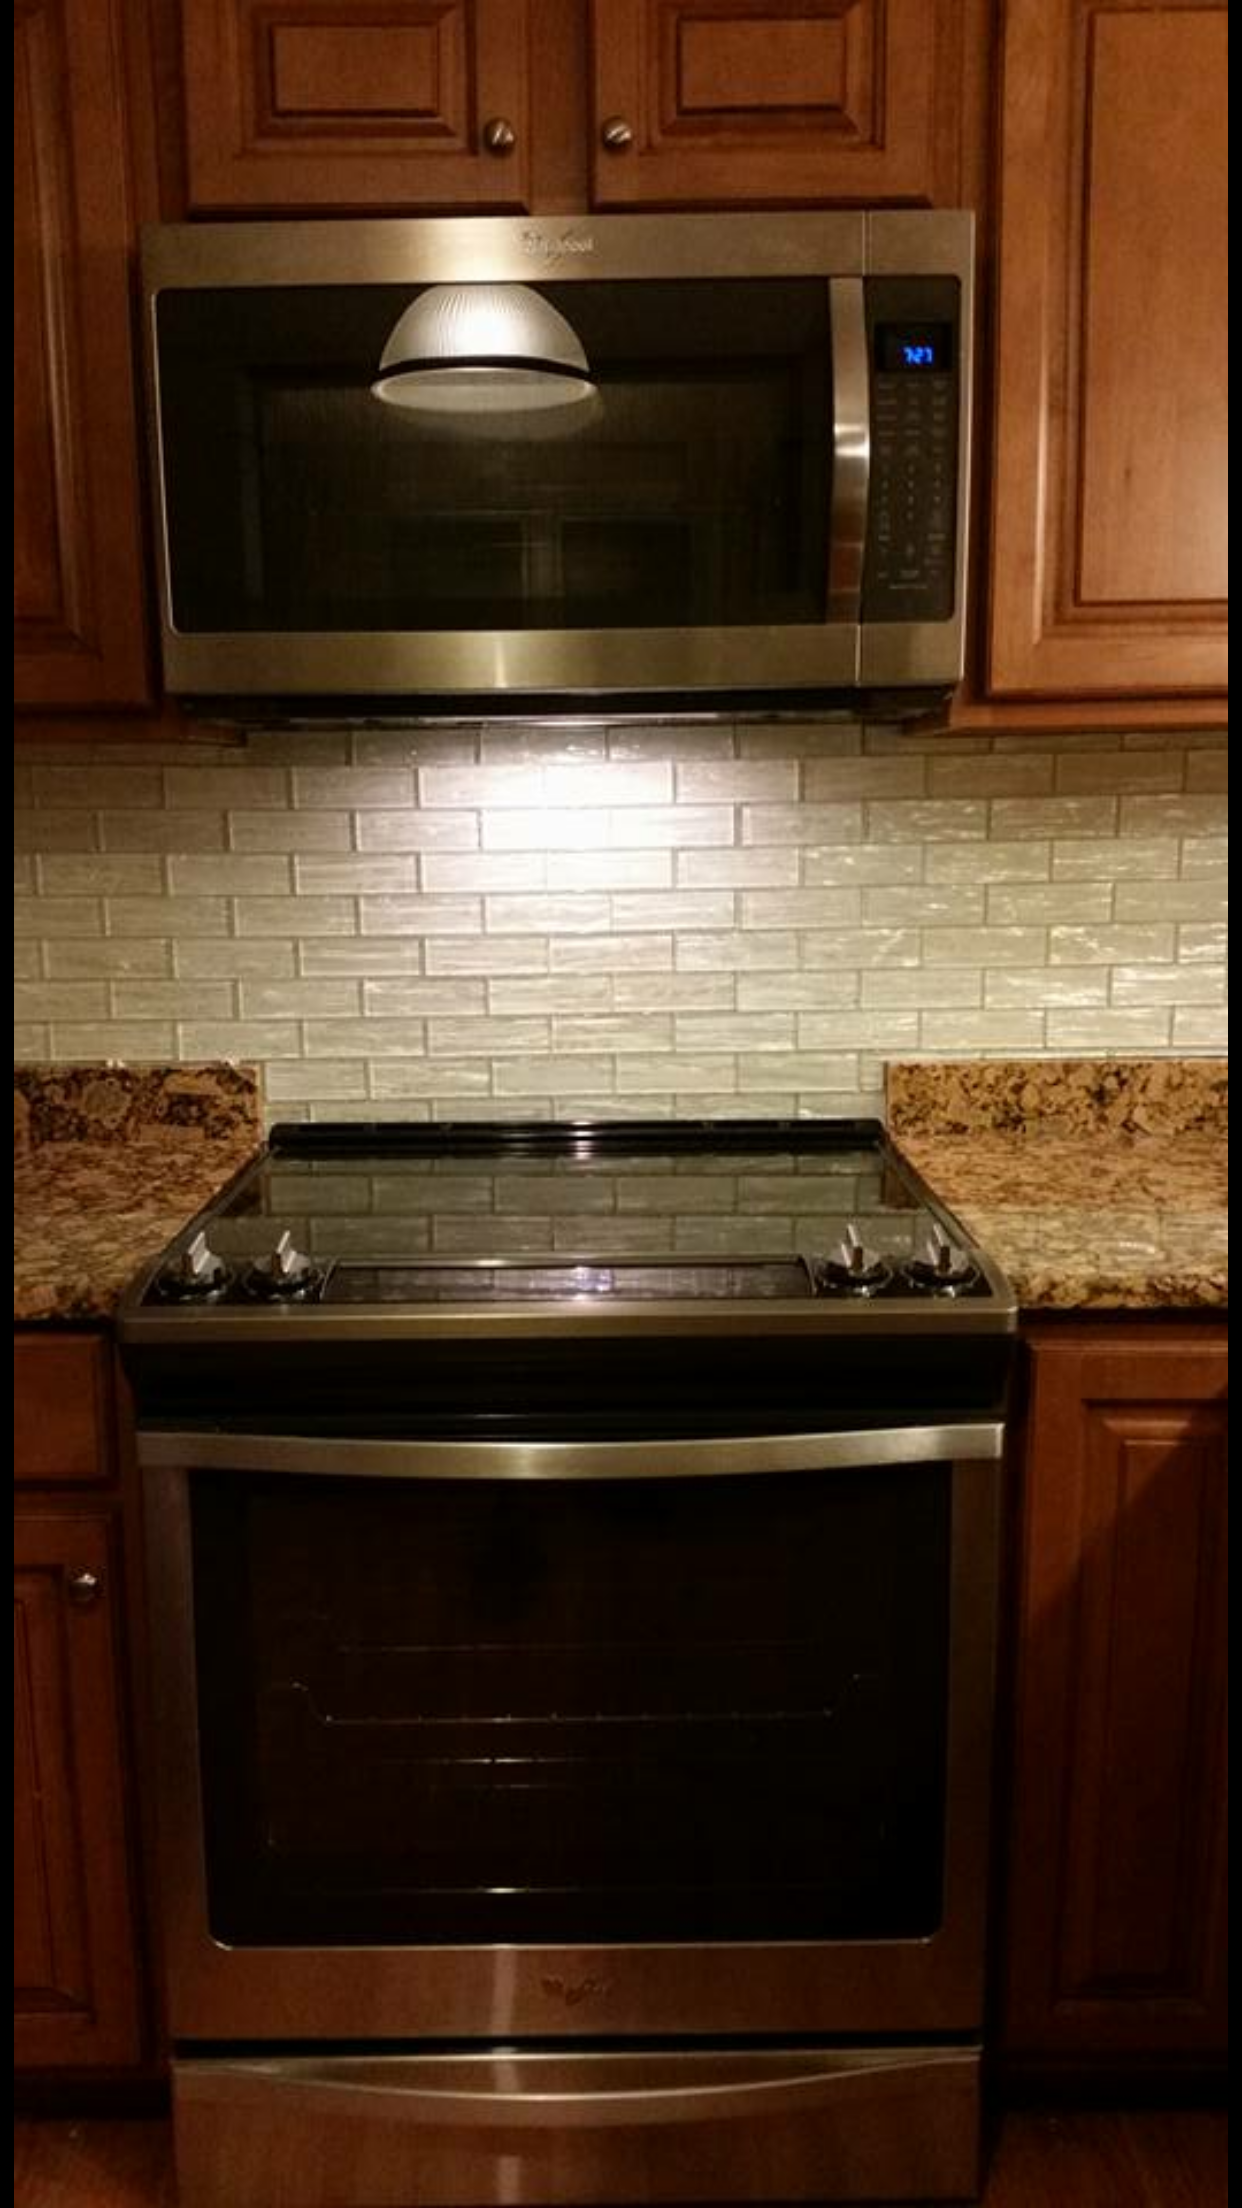 - Kitchen, Slide In Range, Mosaic Tile, Stainless Steel, Granite